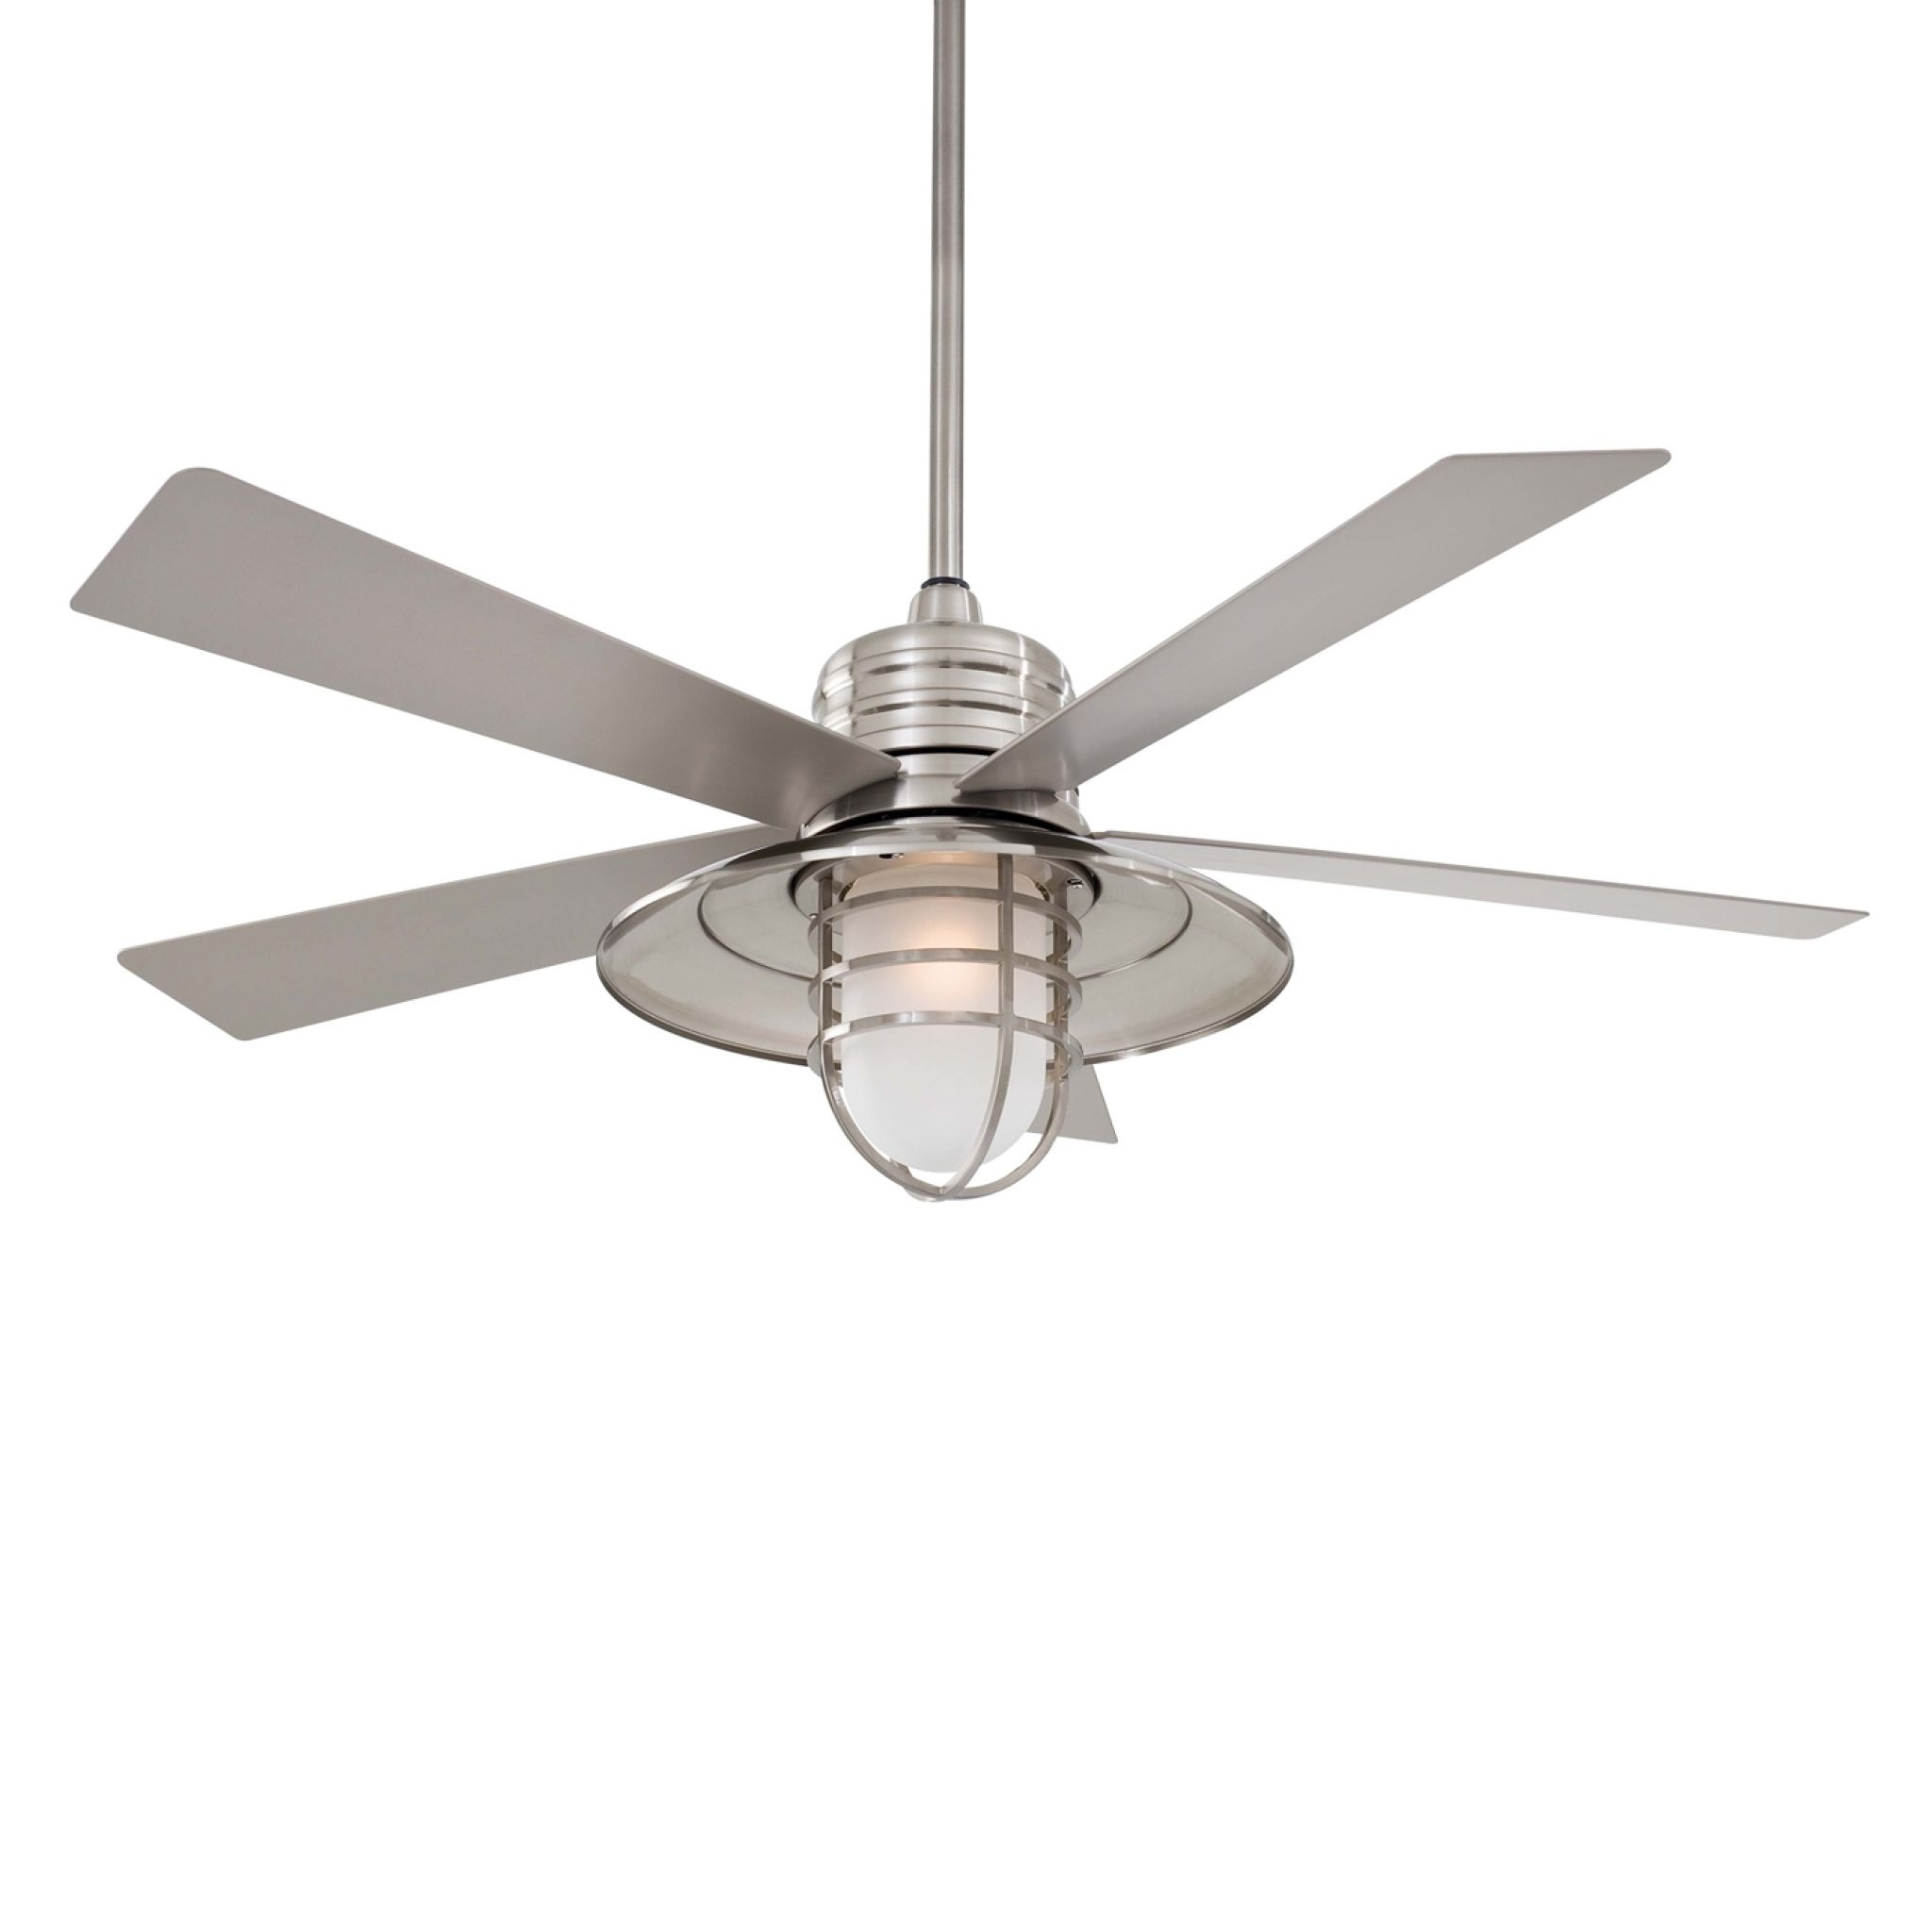 Widely Used Small Outdoor Ceiling Fan With Light – Best Paint For Interior Walls Regarding Small Outdoor Ceiling Fans With Lights (View 2 of 20)